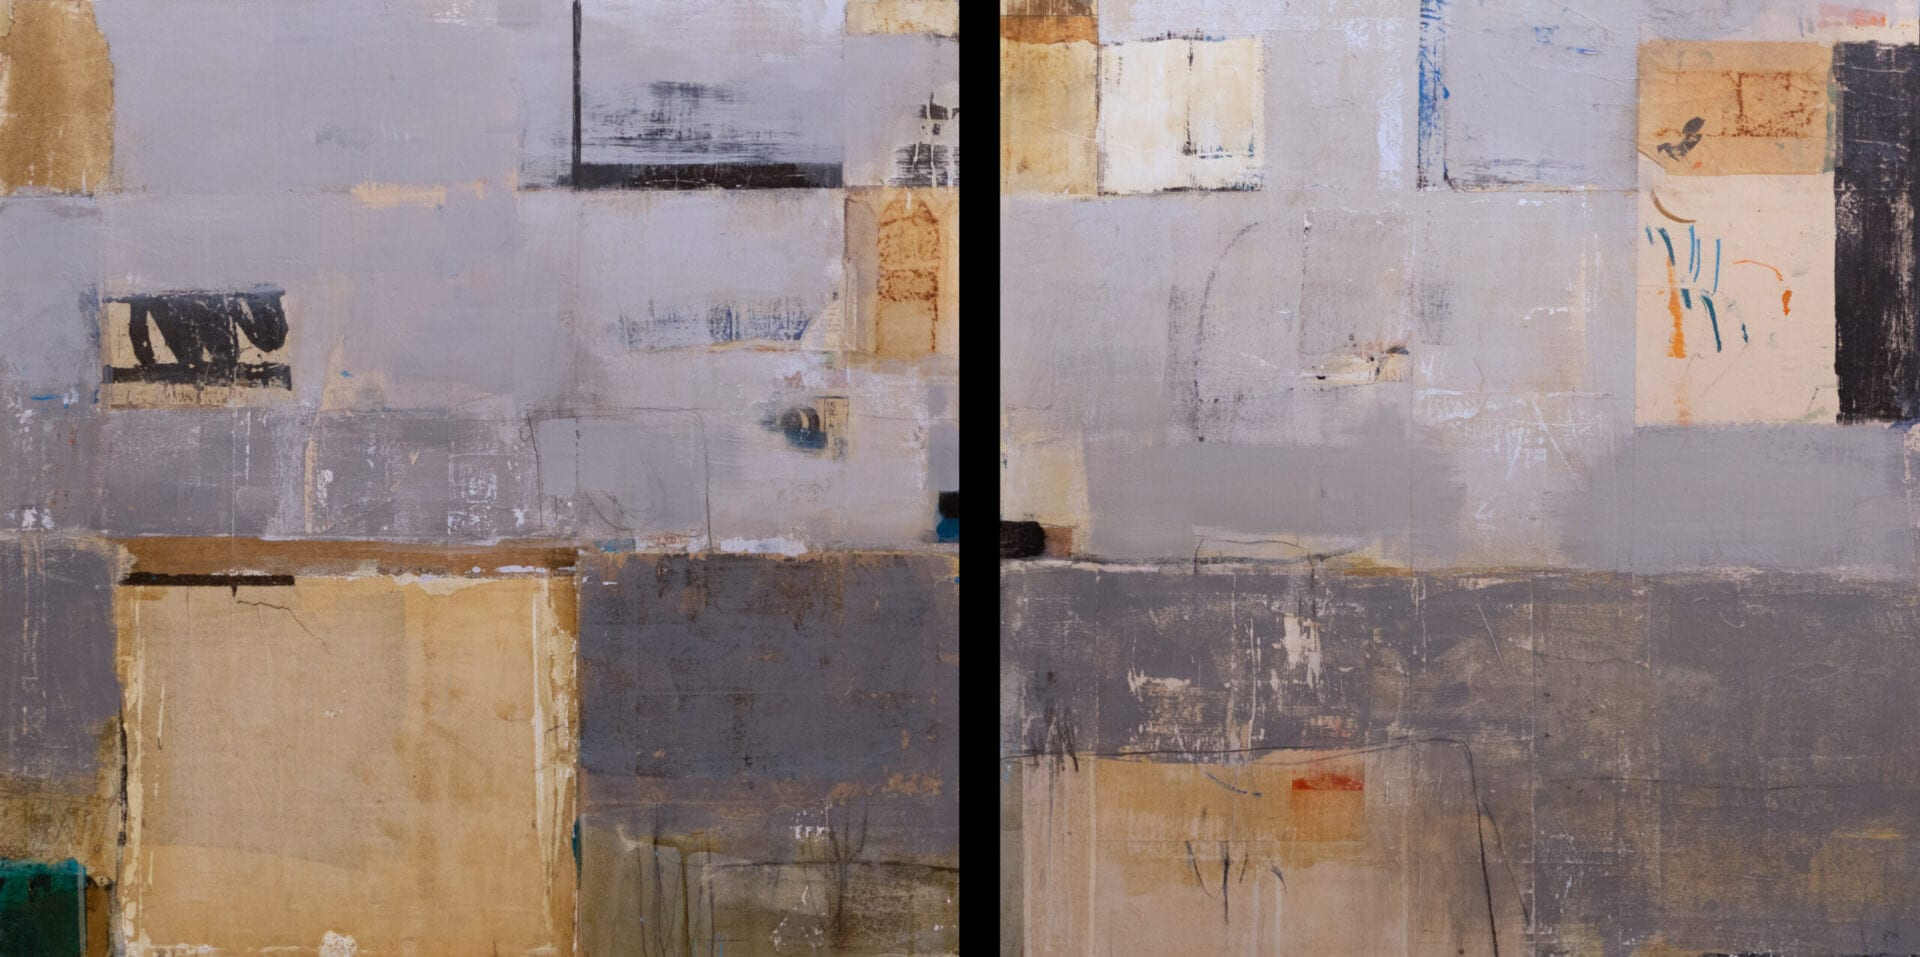 "Raccolta | Allison B. Cooke | Acrylic/Collage on Panel | 30 x 60"" (diptych)"